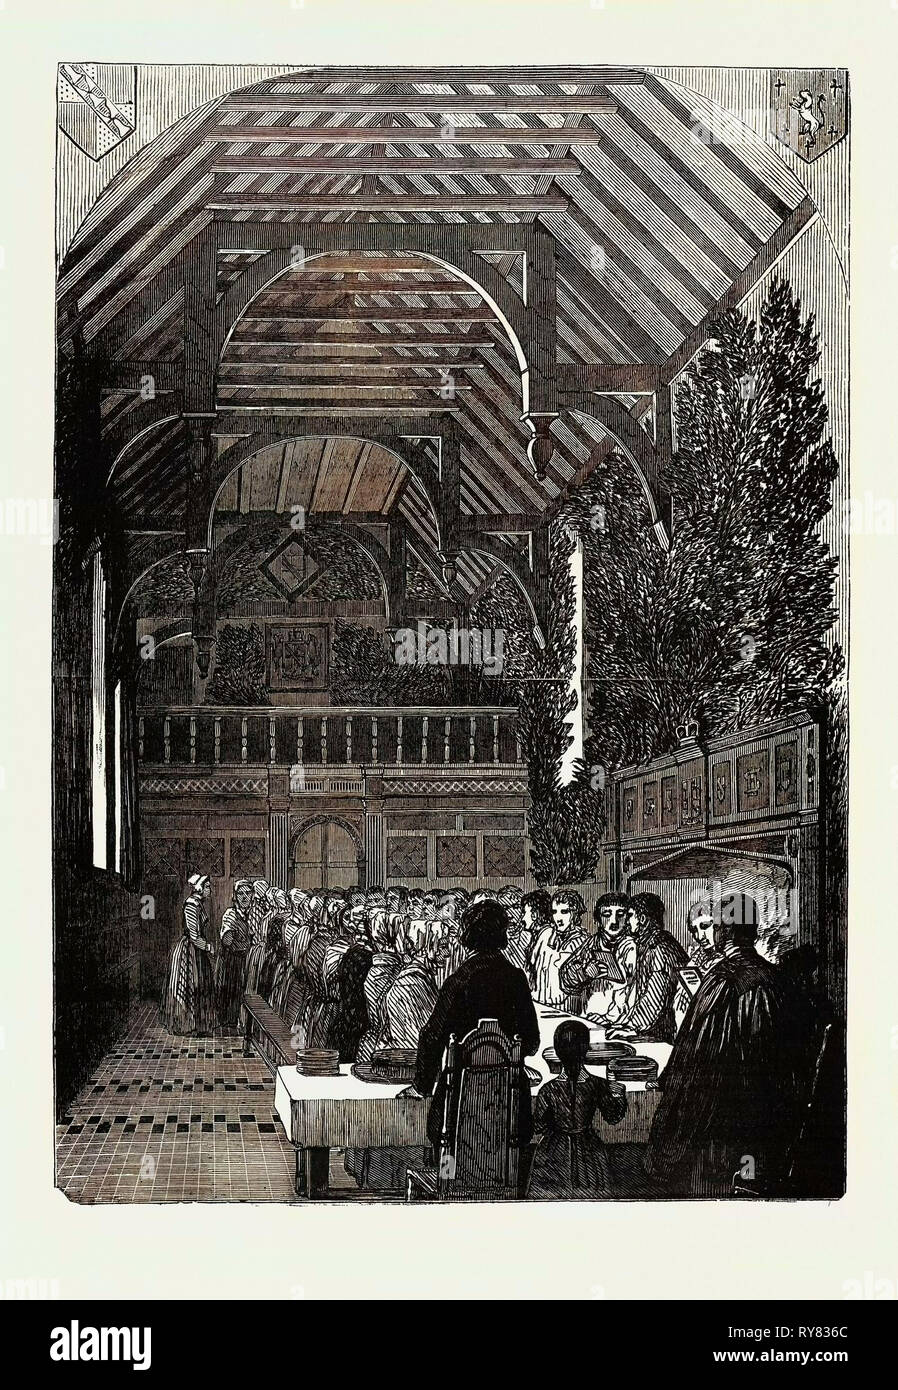 Celebration of Palm Sunday in the Hall of Sackville College, East Grinstead - Stock Image